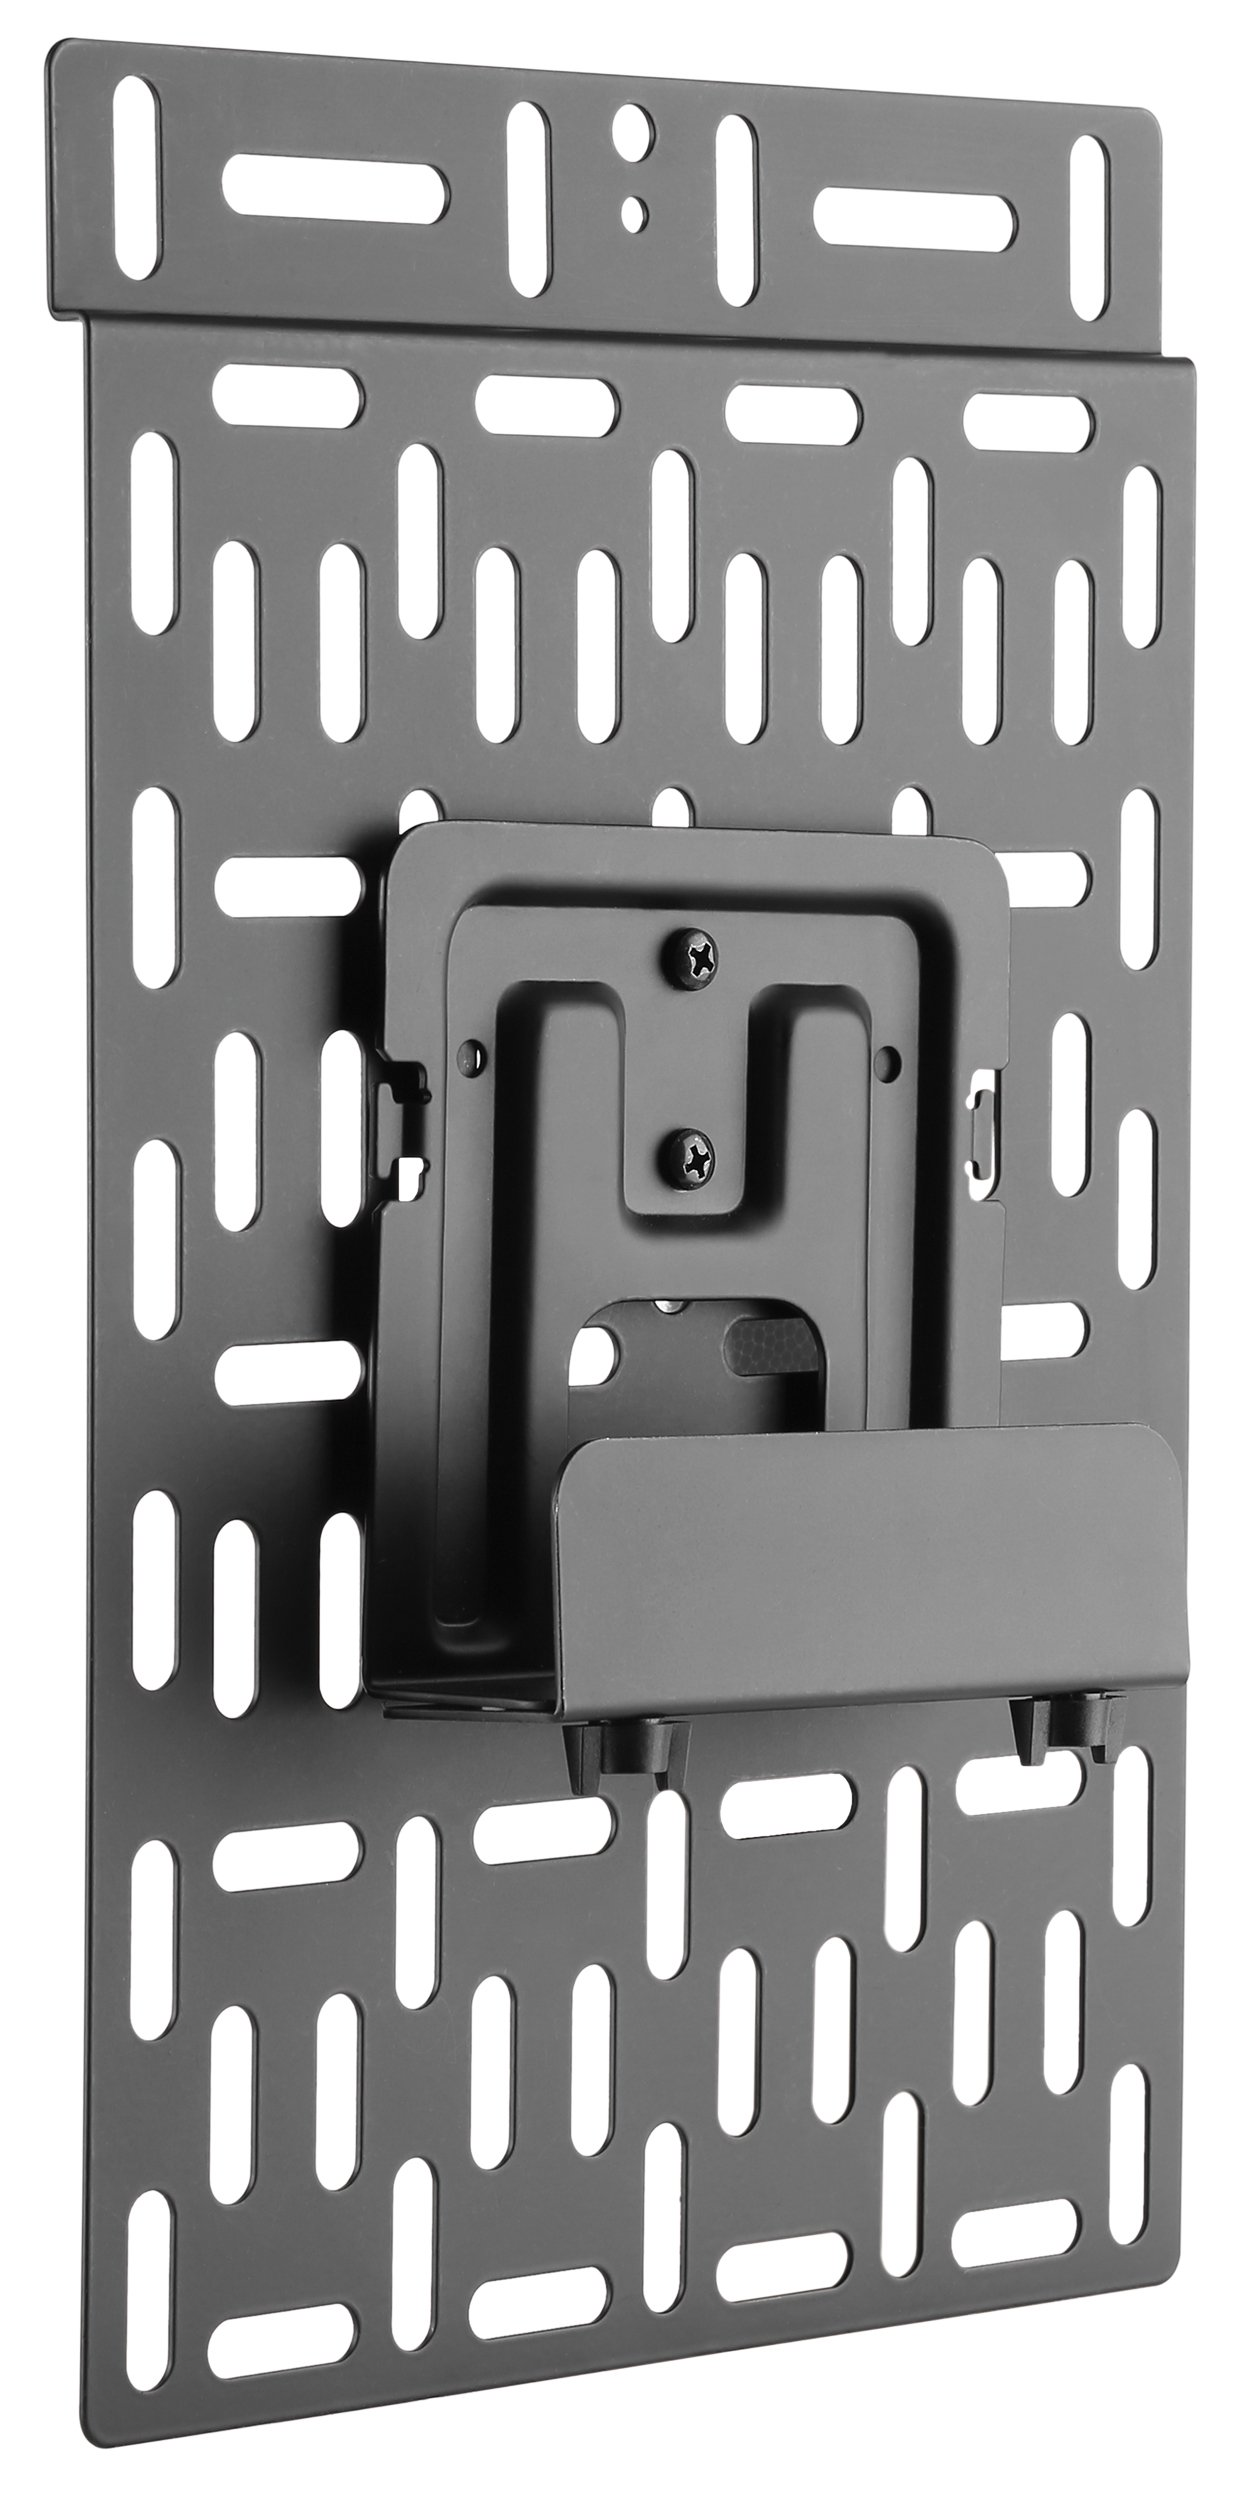 VIVO Black Universal Streaming Device Bracket Mount Attaches to Wall or Back of TV | Fits Amazon Fire, Apple TV, Roku Streaming Media Players, TiVo, and More (MOUNT-ALL01)